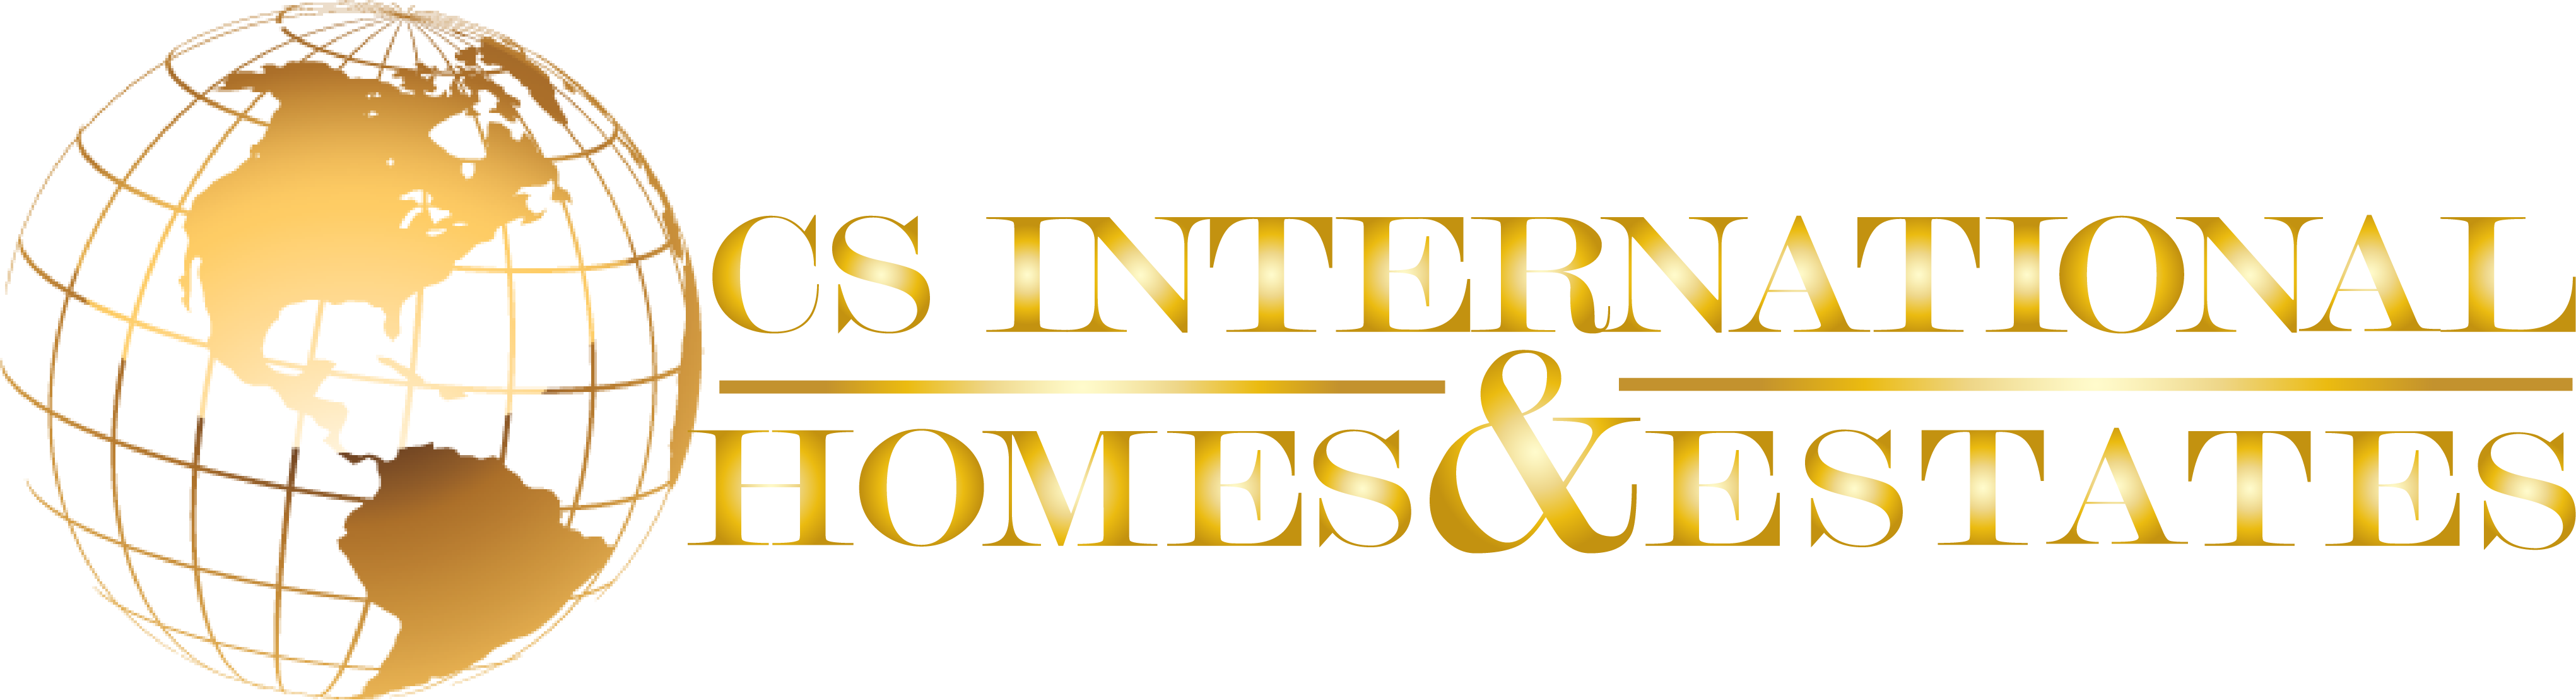 CS International Homes & Estates